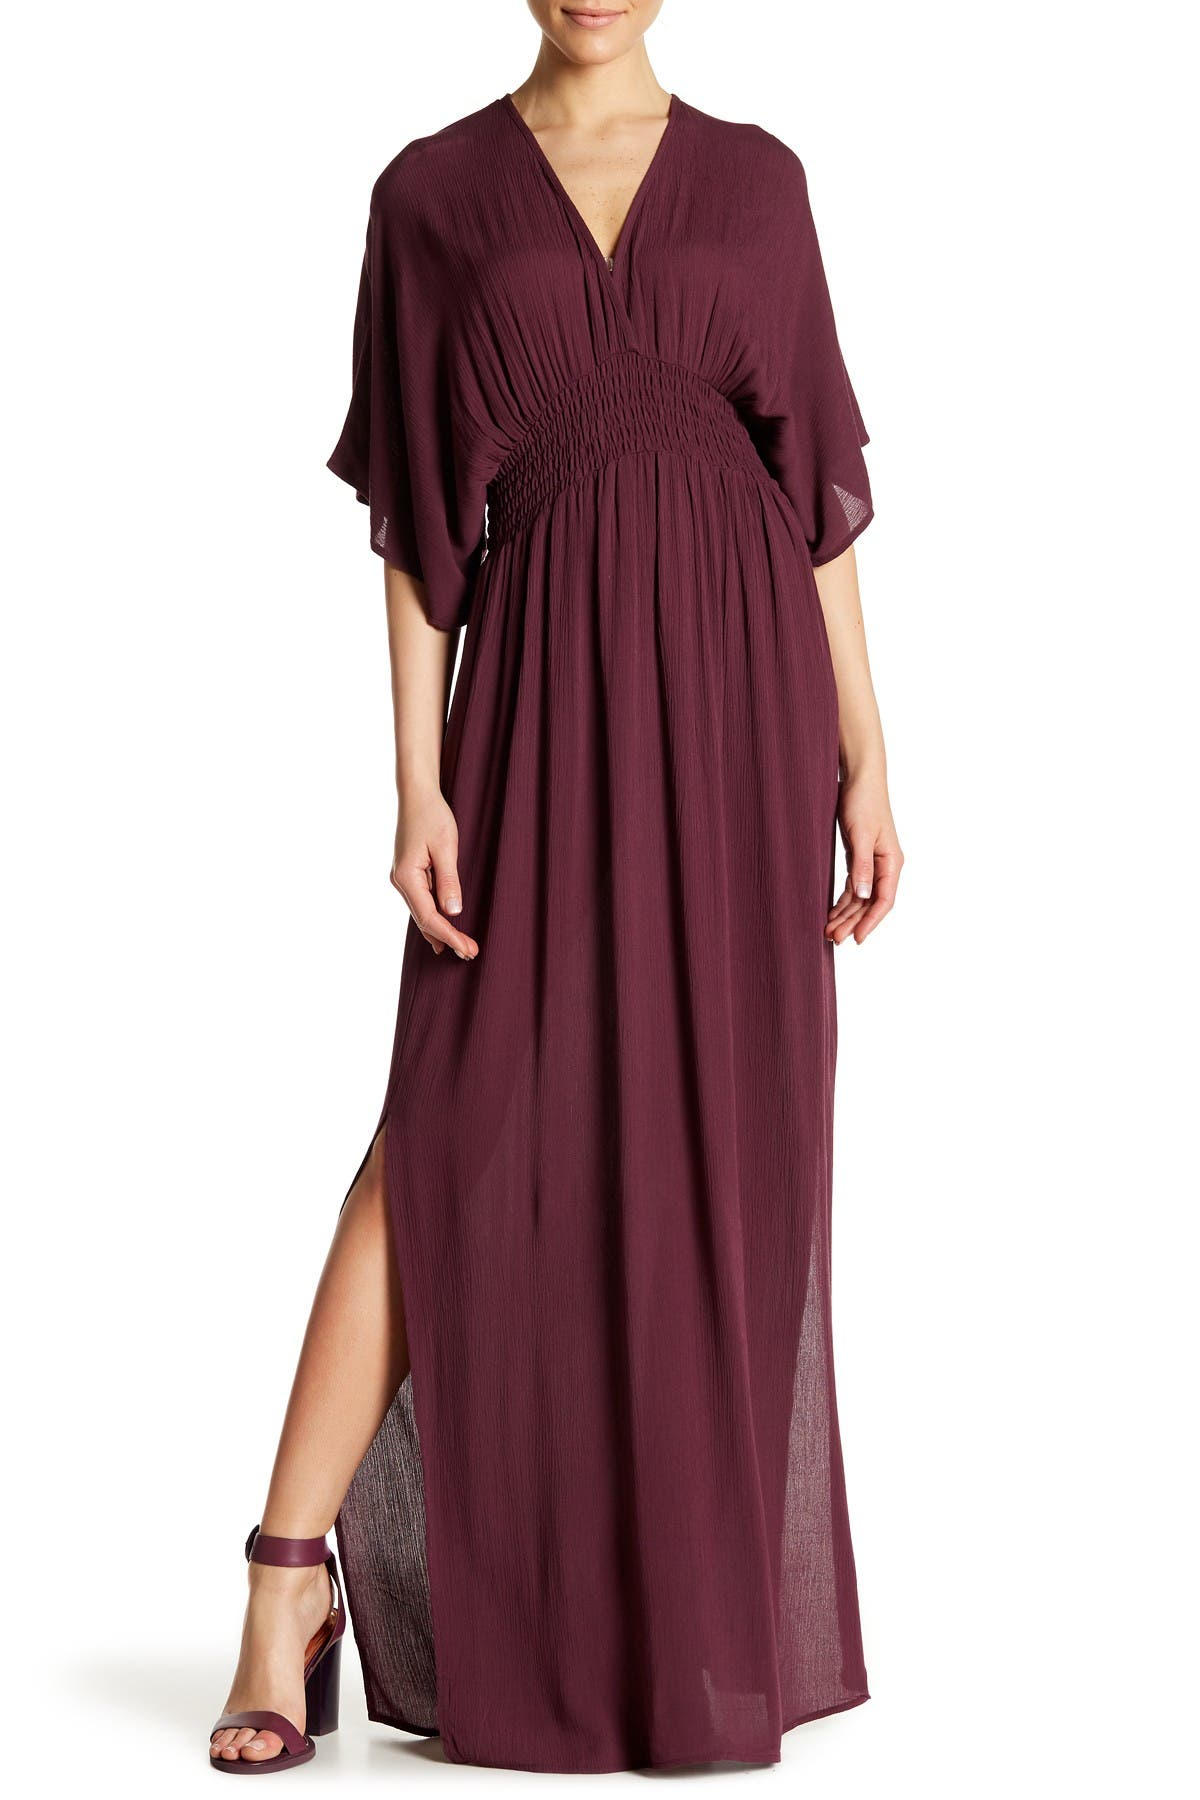 Image of Love Stitch Gauze Kimono Maxi Dress